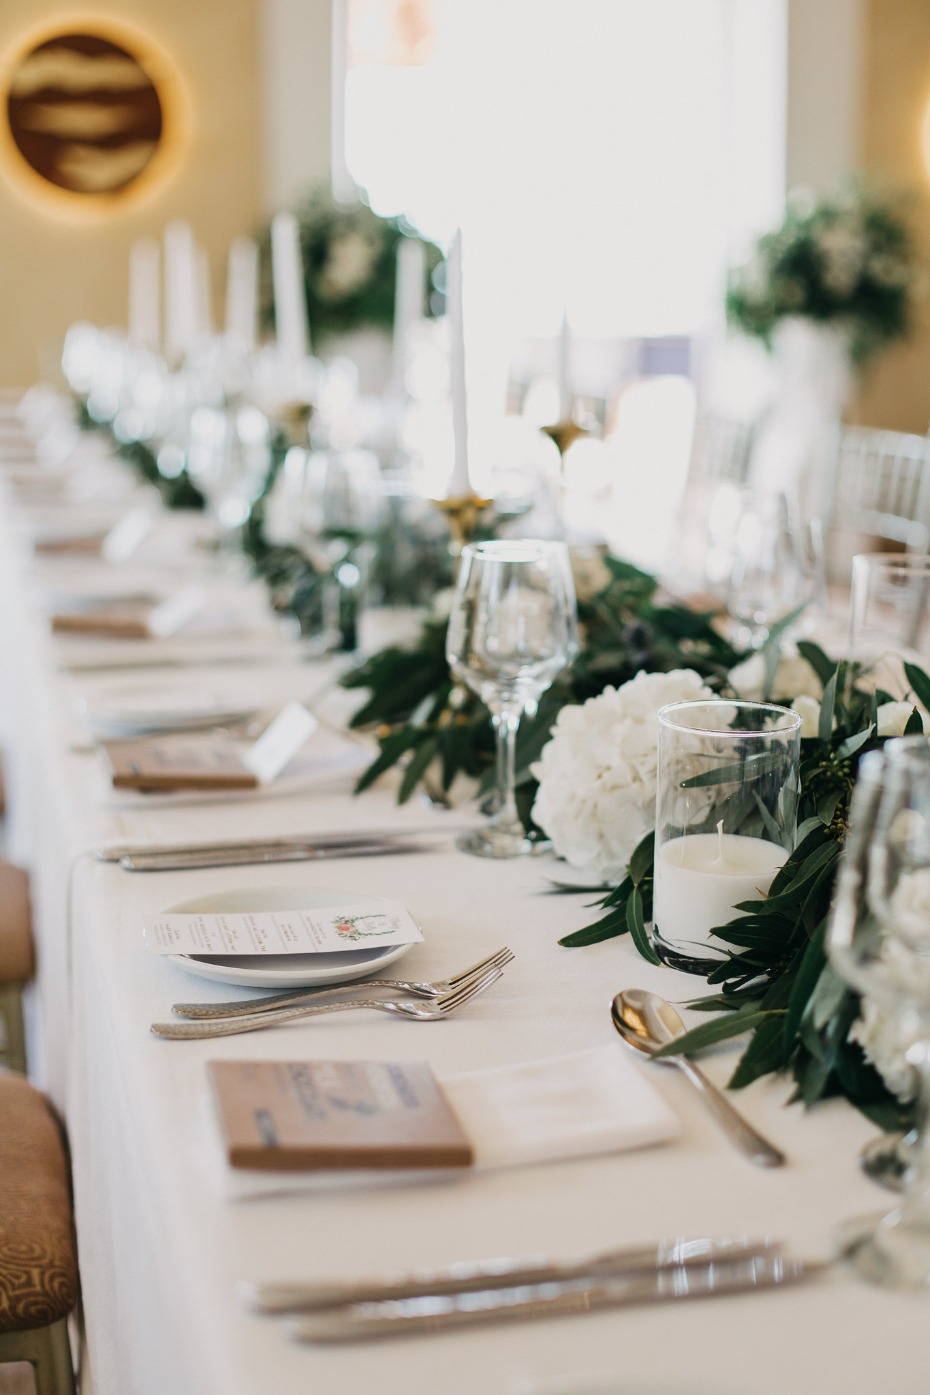 Reception table with greenery and white flowers